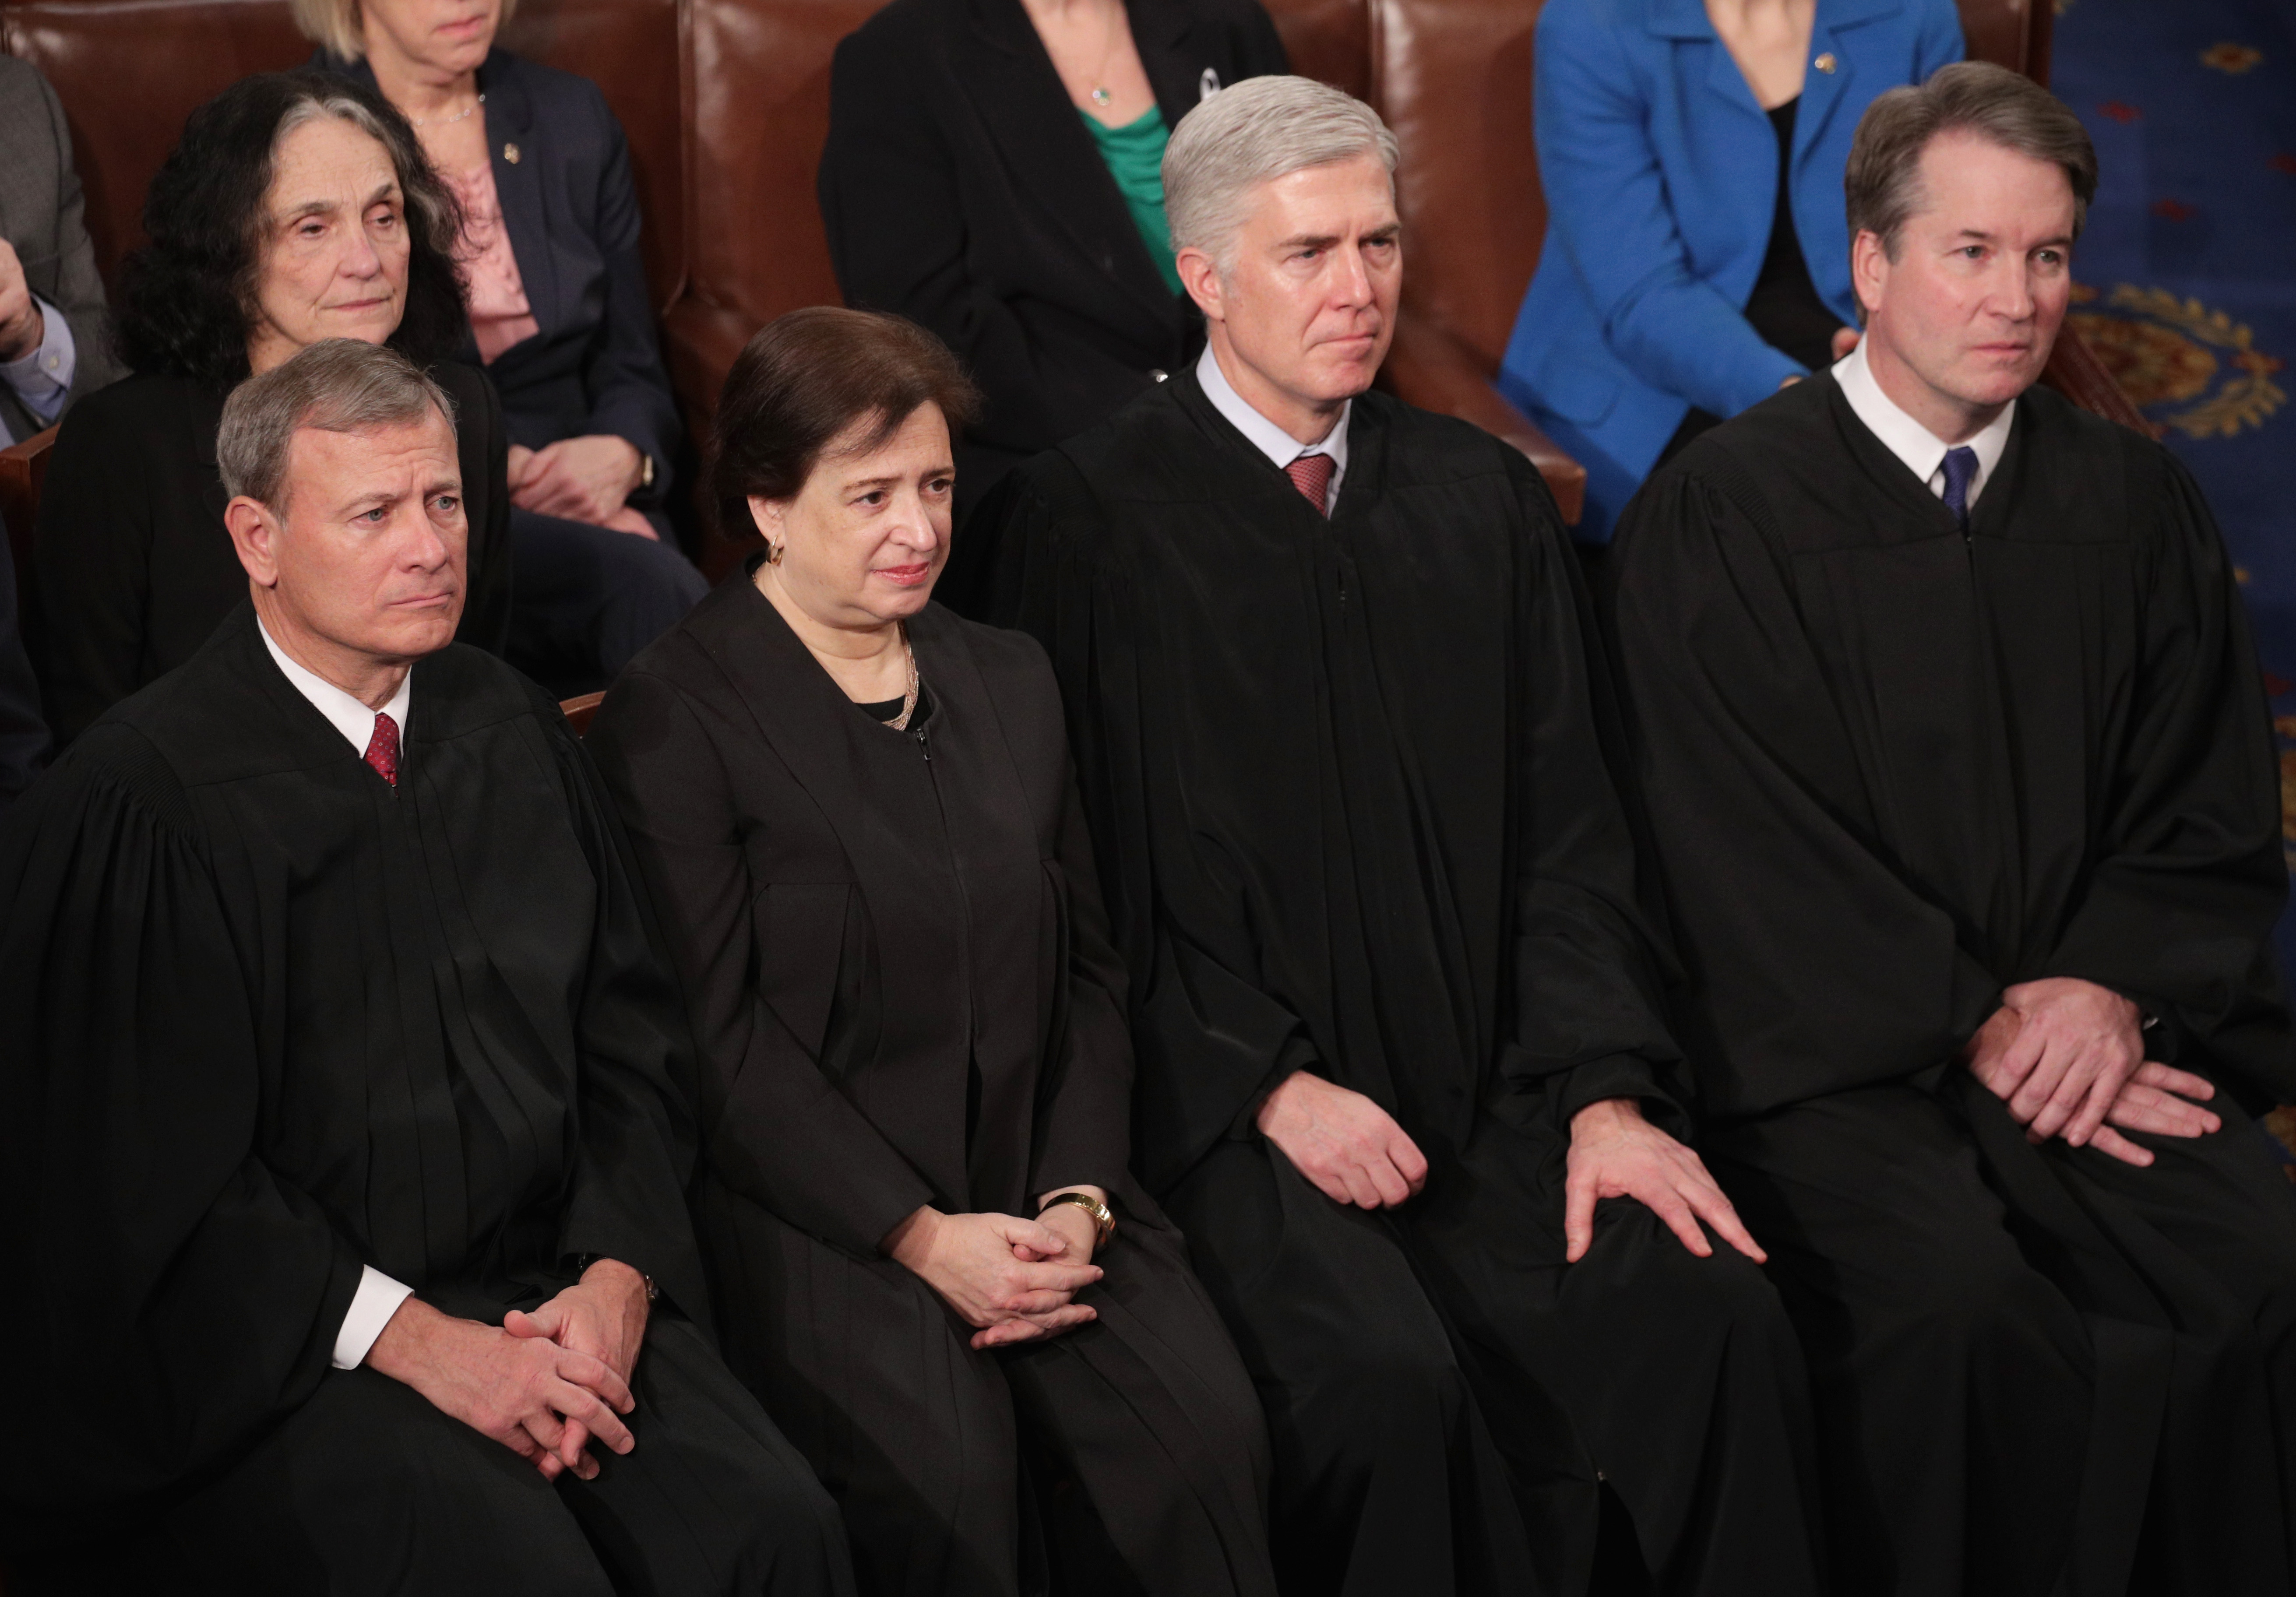 Chief Justice John Roberts and Justices Elena Kagan, Neil Gorsuch, and Brett Kavanaugh look on as President Donald Trump delivers the State of the Union address on February 5, 2019. (Alex Wong/Getty Images)